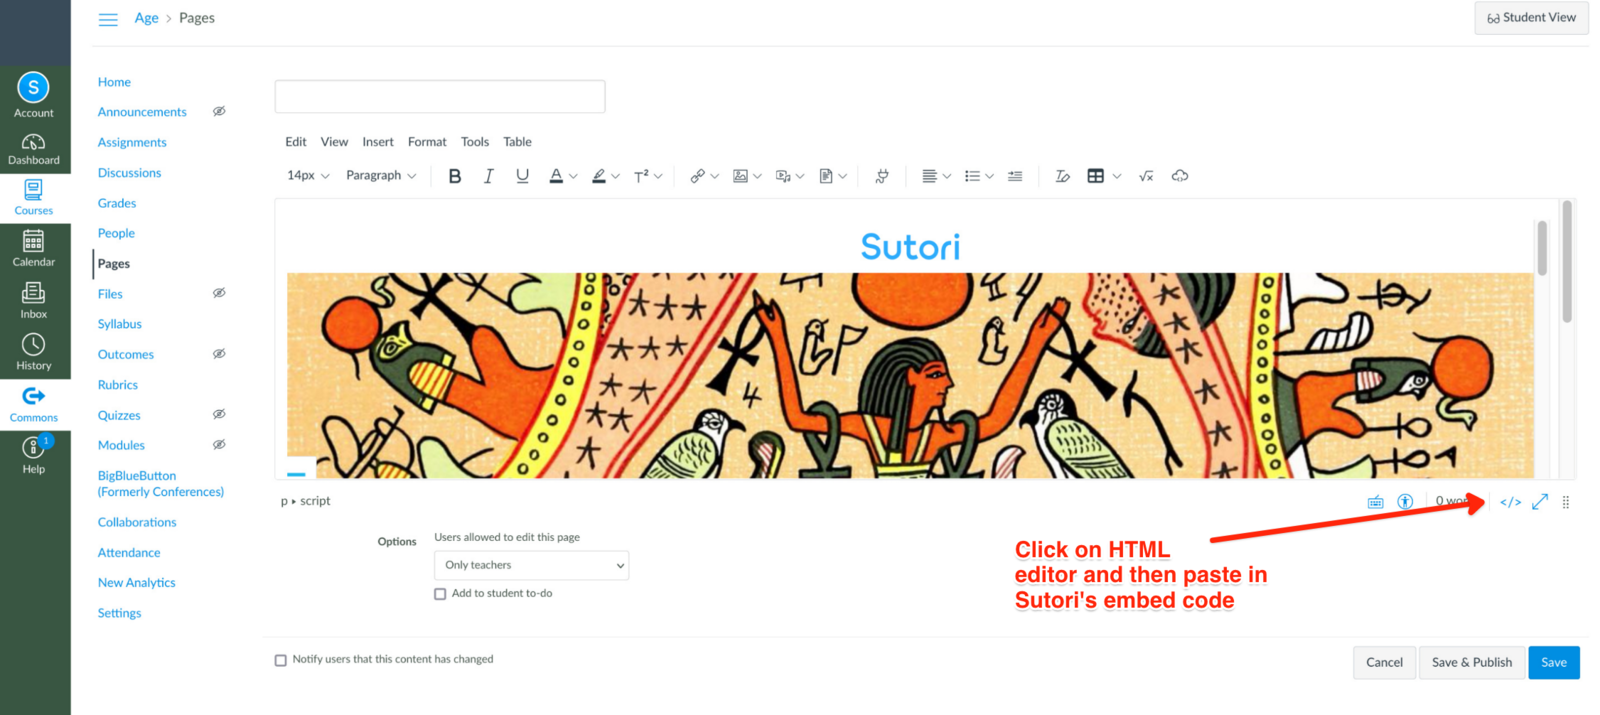 How to add the embed code on the HTML editor on Canvas